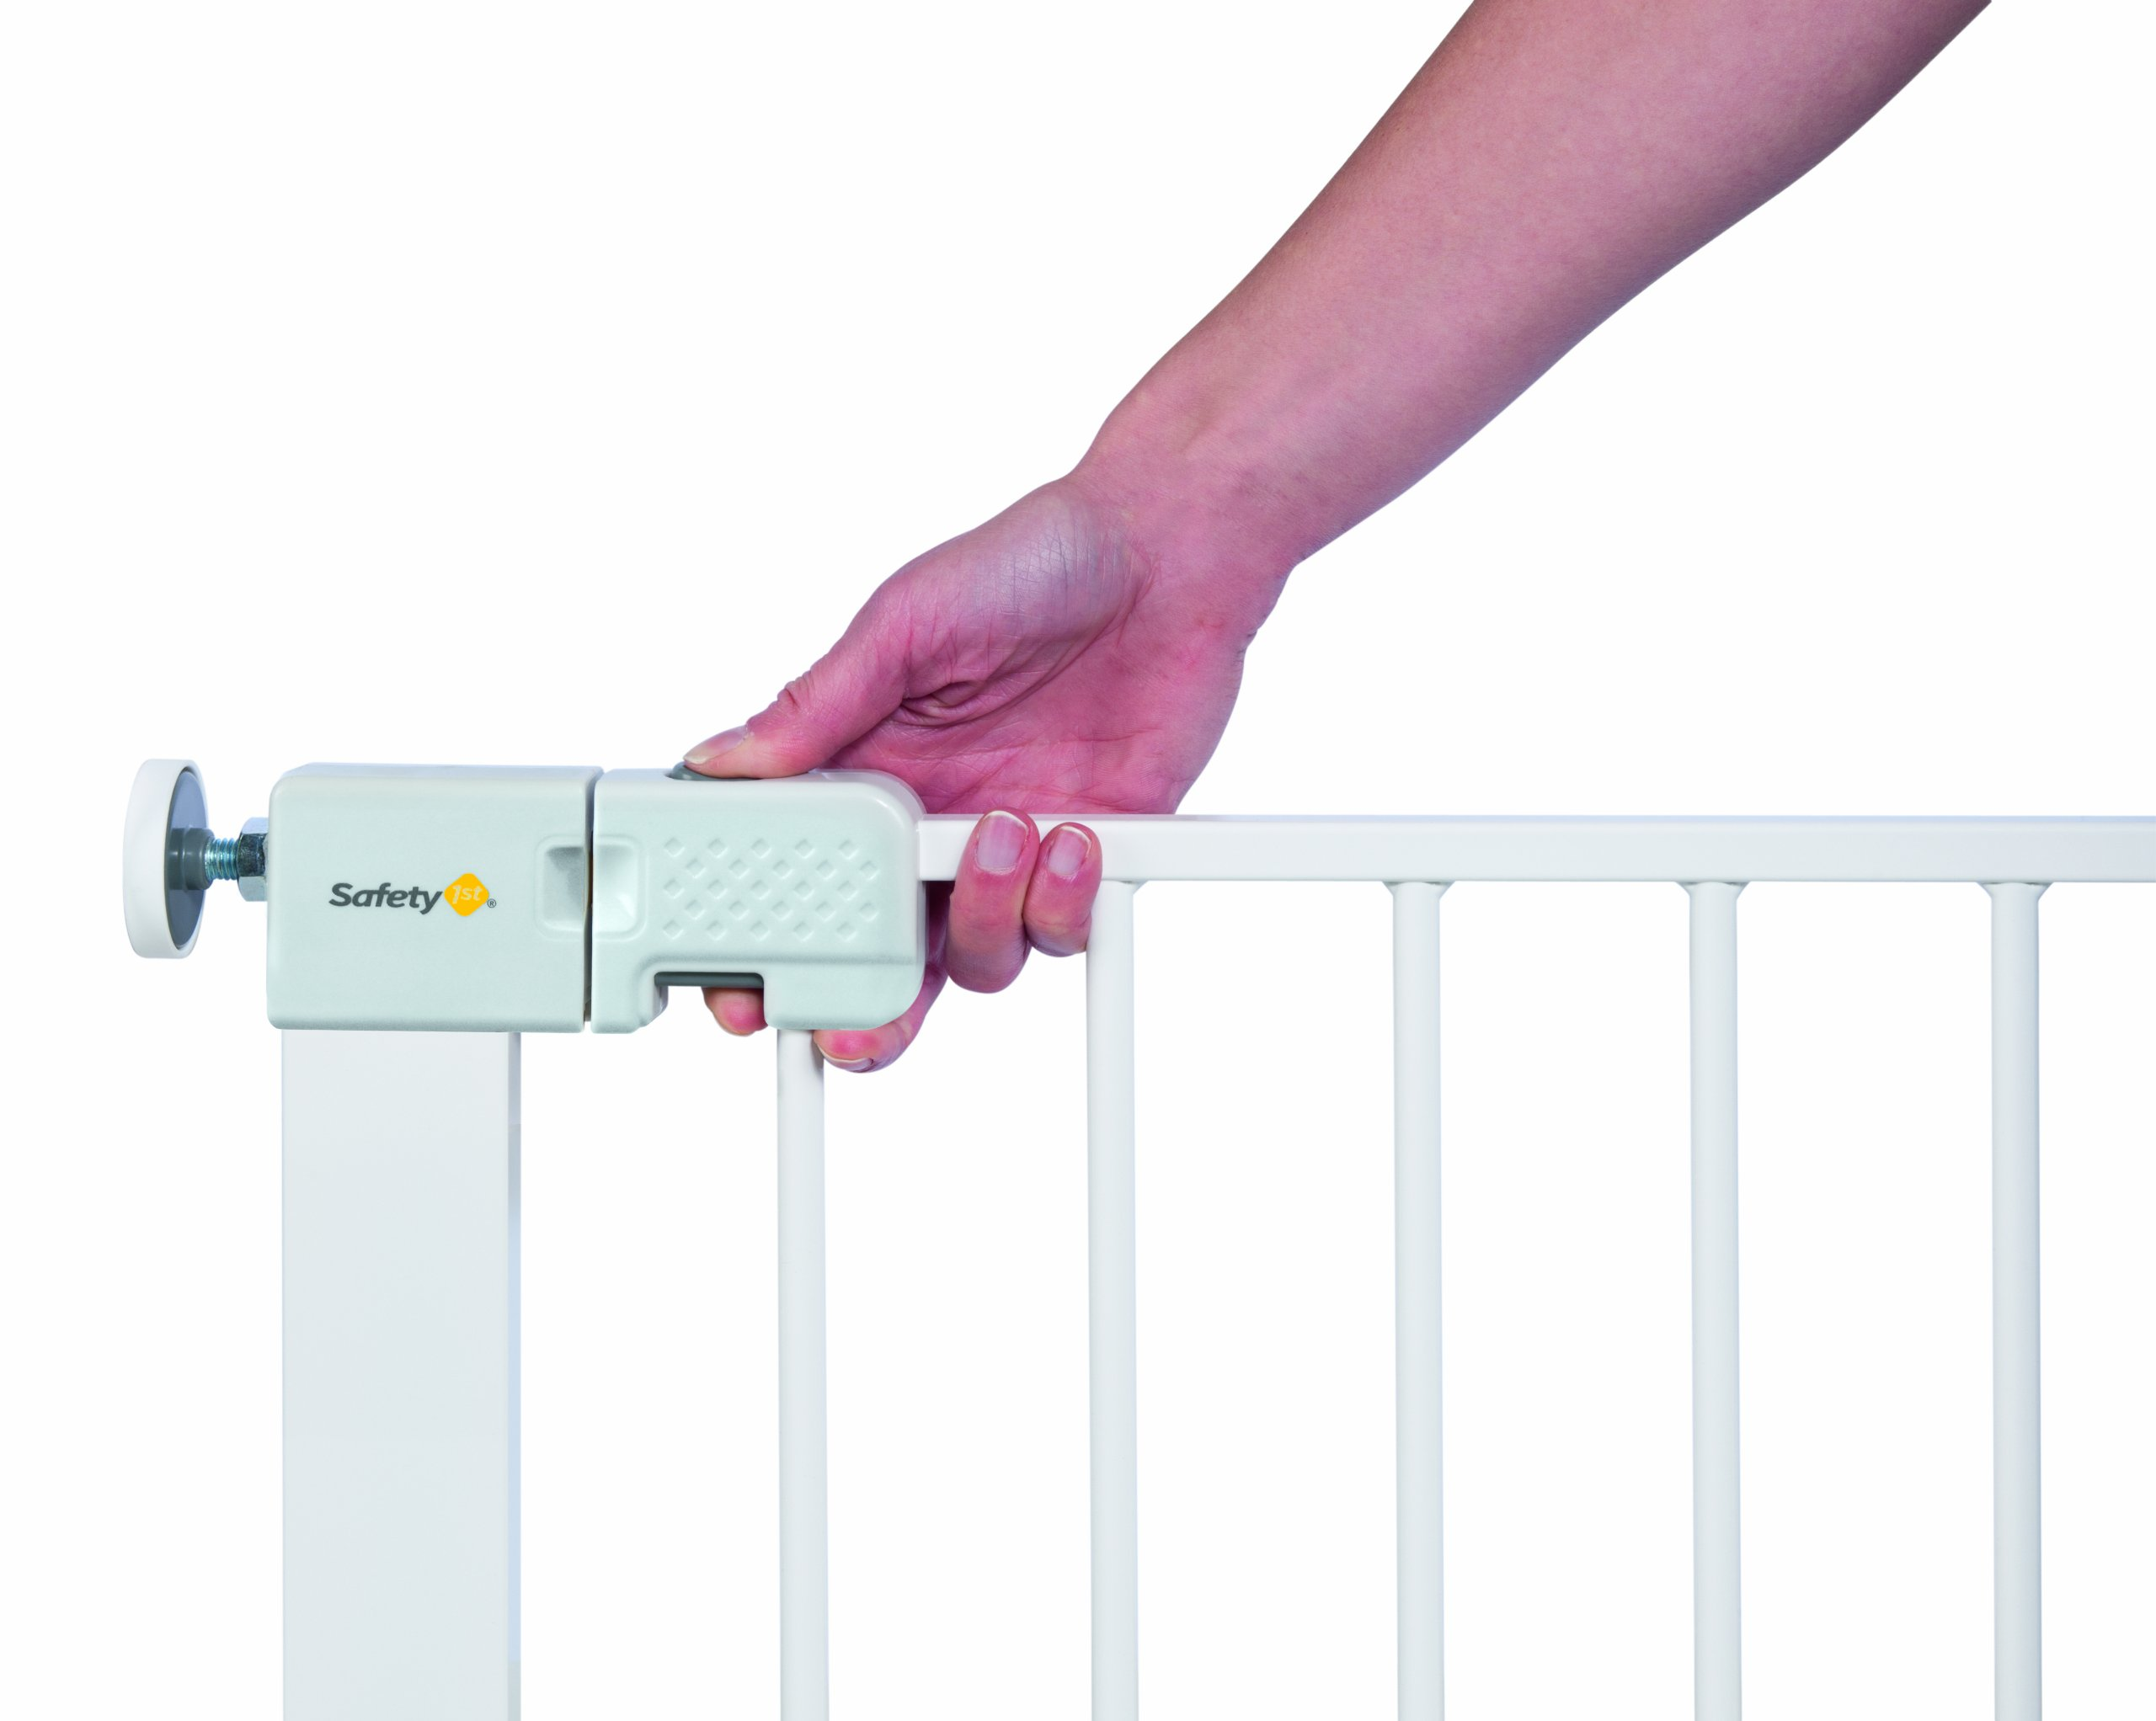 Safety 1st Simply Close Pressure Fit Metal Gate, White Safety 1st Adjusts to fit openings from 73 cm to 80 cm Extends up to 136 cm with separately available extensions Strong steel frame with four-point pressure fit 3